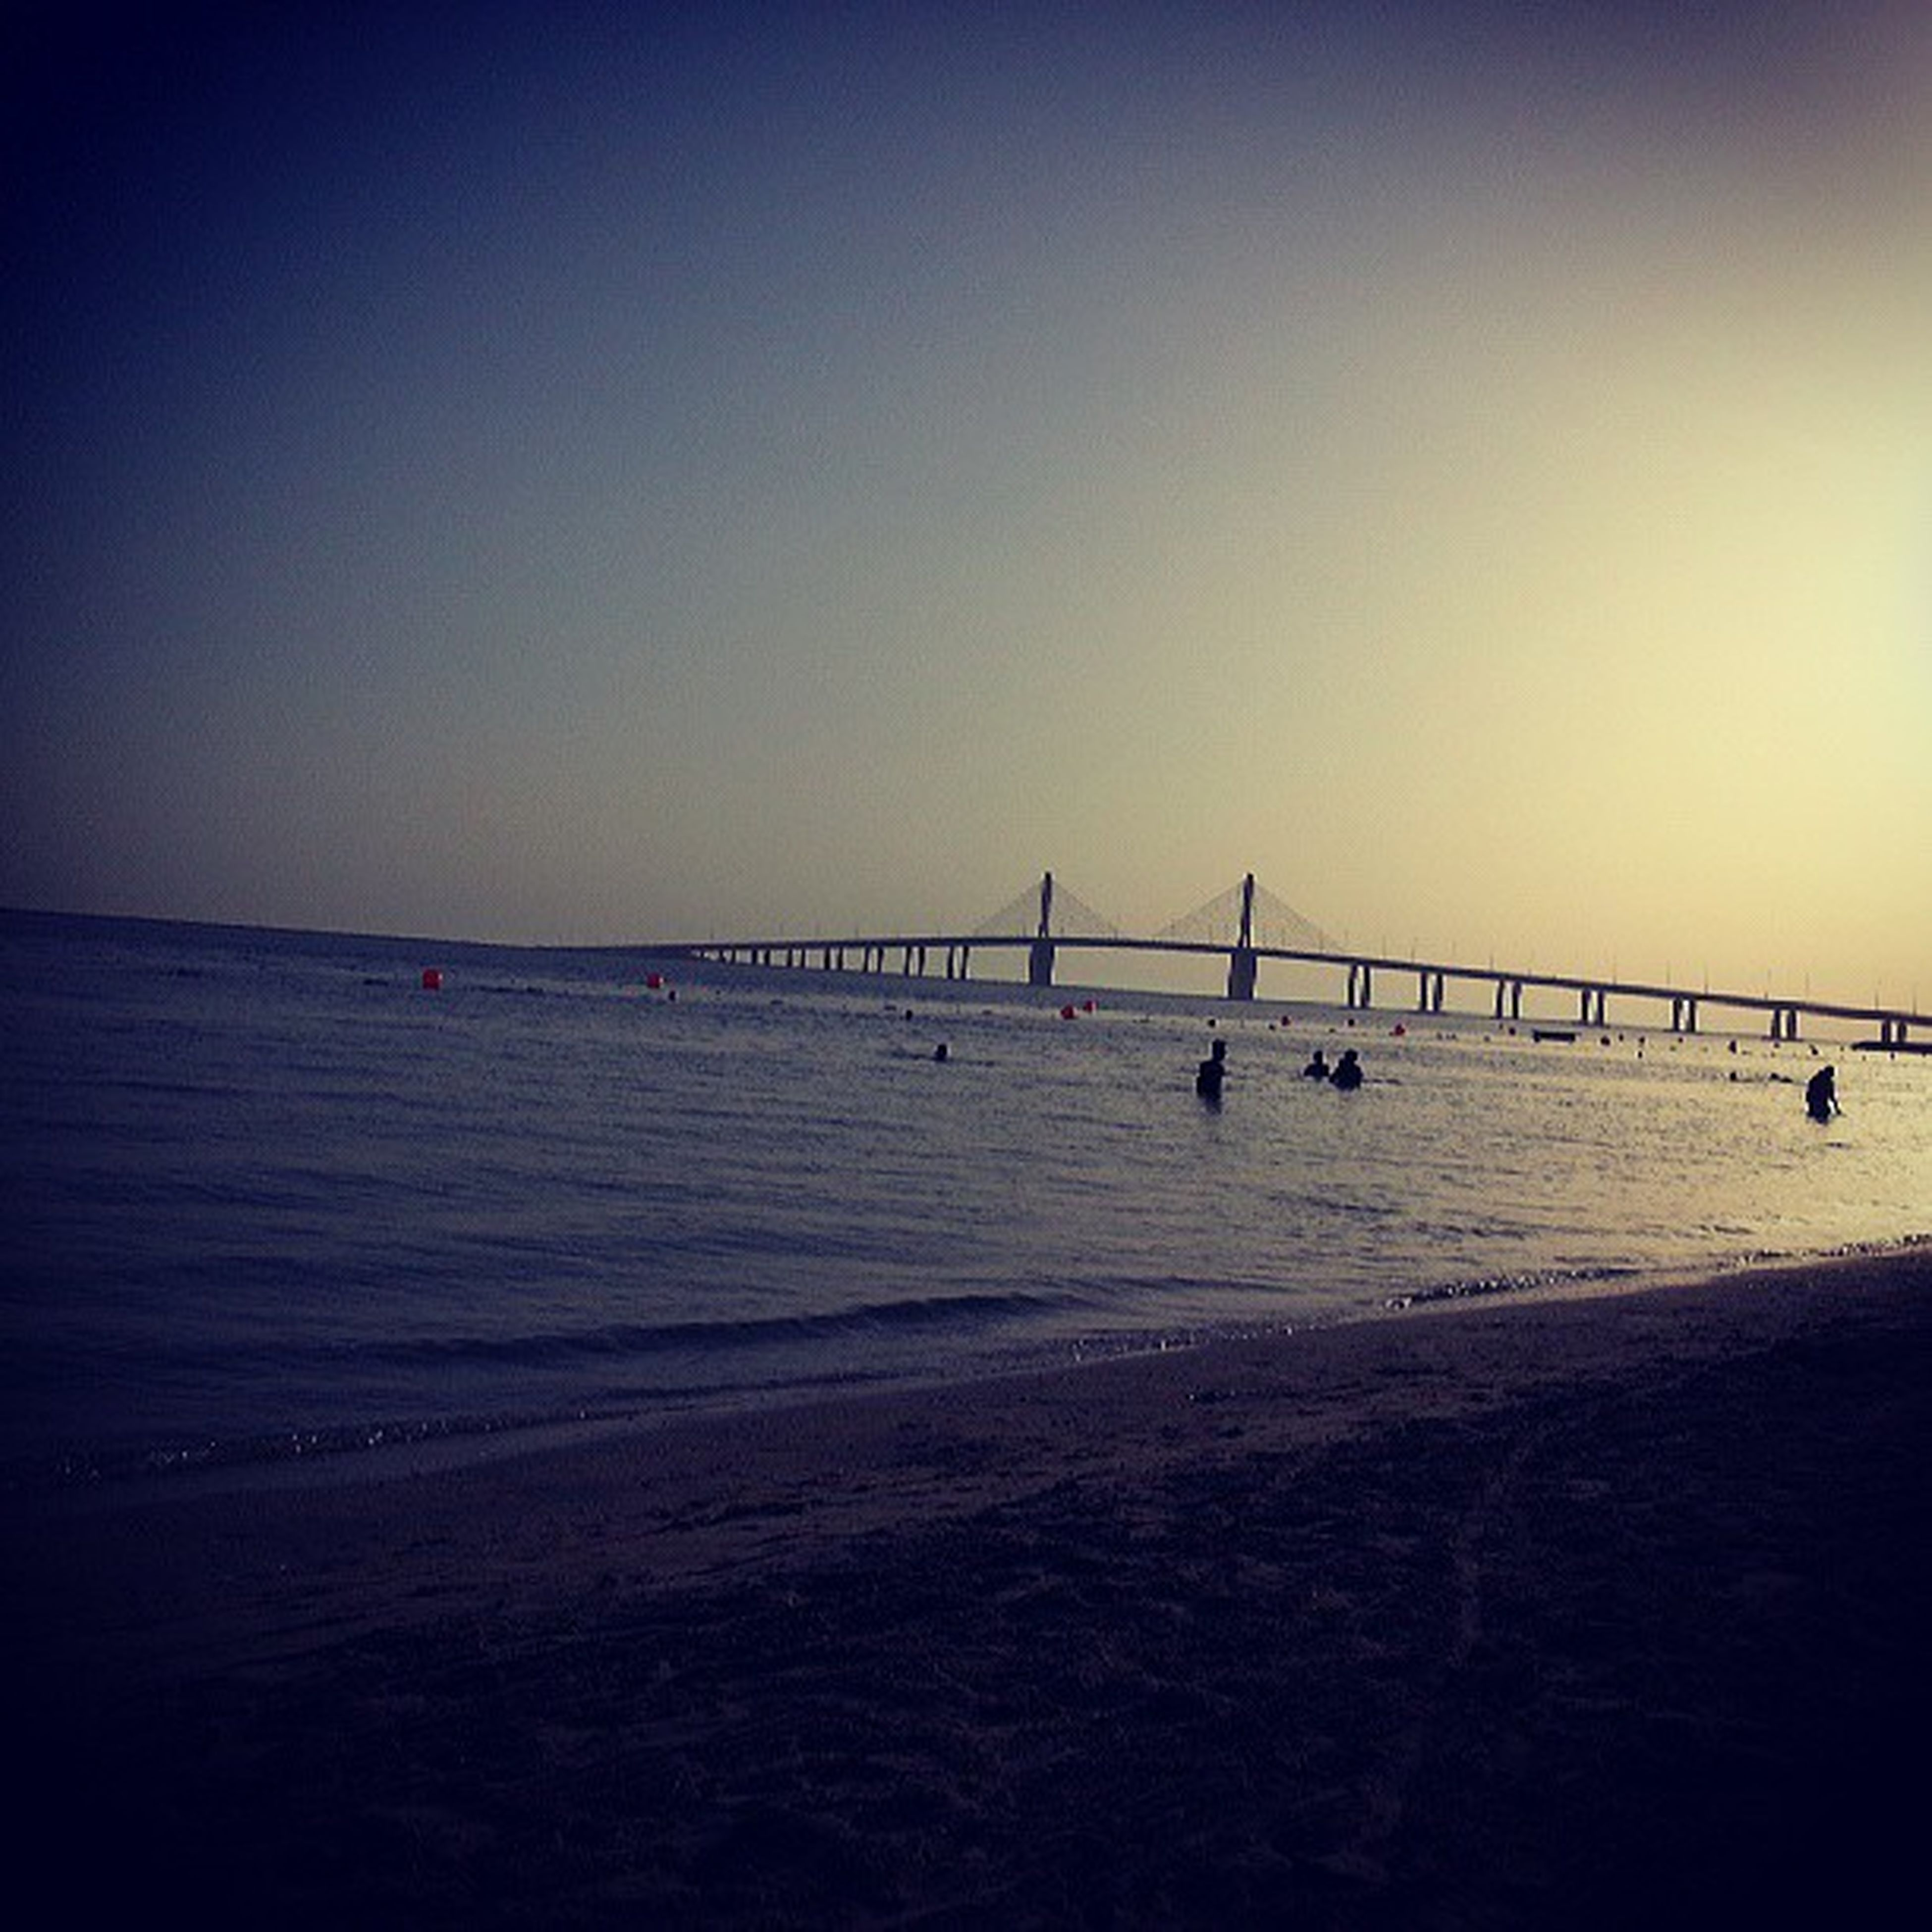 sea, water, clear sky, copy space, beach, horizon over water, tranquil scene, tranquility, scenics, sunset, nature, beauty in nature, silhouette, shore, incidental people, outdoors, idyllic, sand, sky, built structure